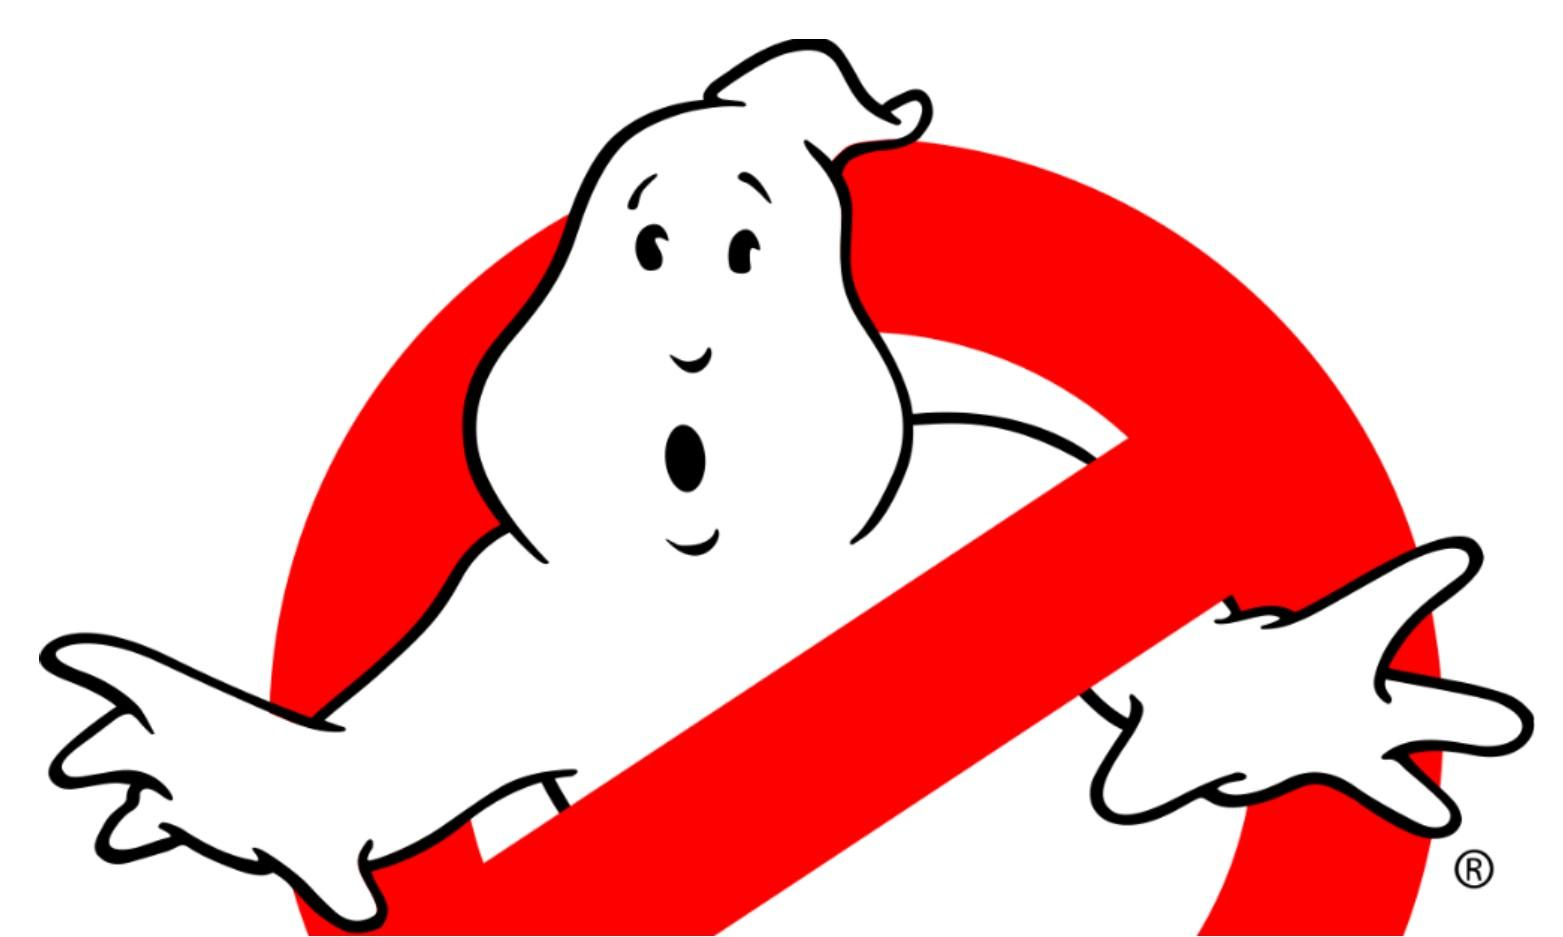 Ghostbusters Halloween Takeover at Swansea Waterfront Museum